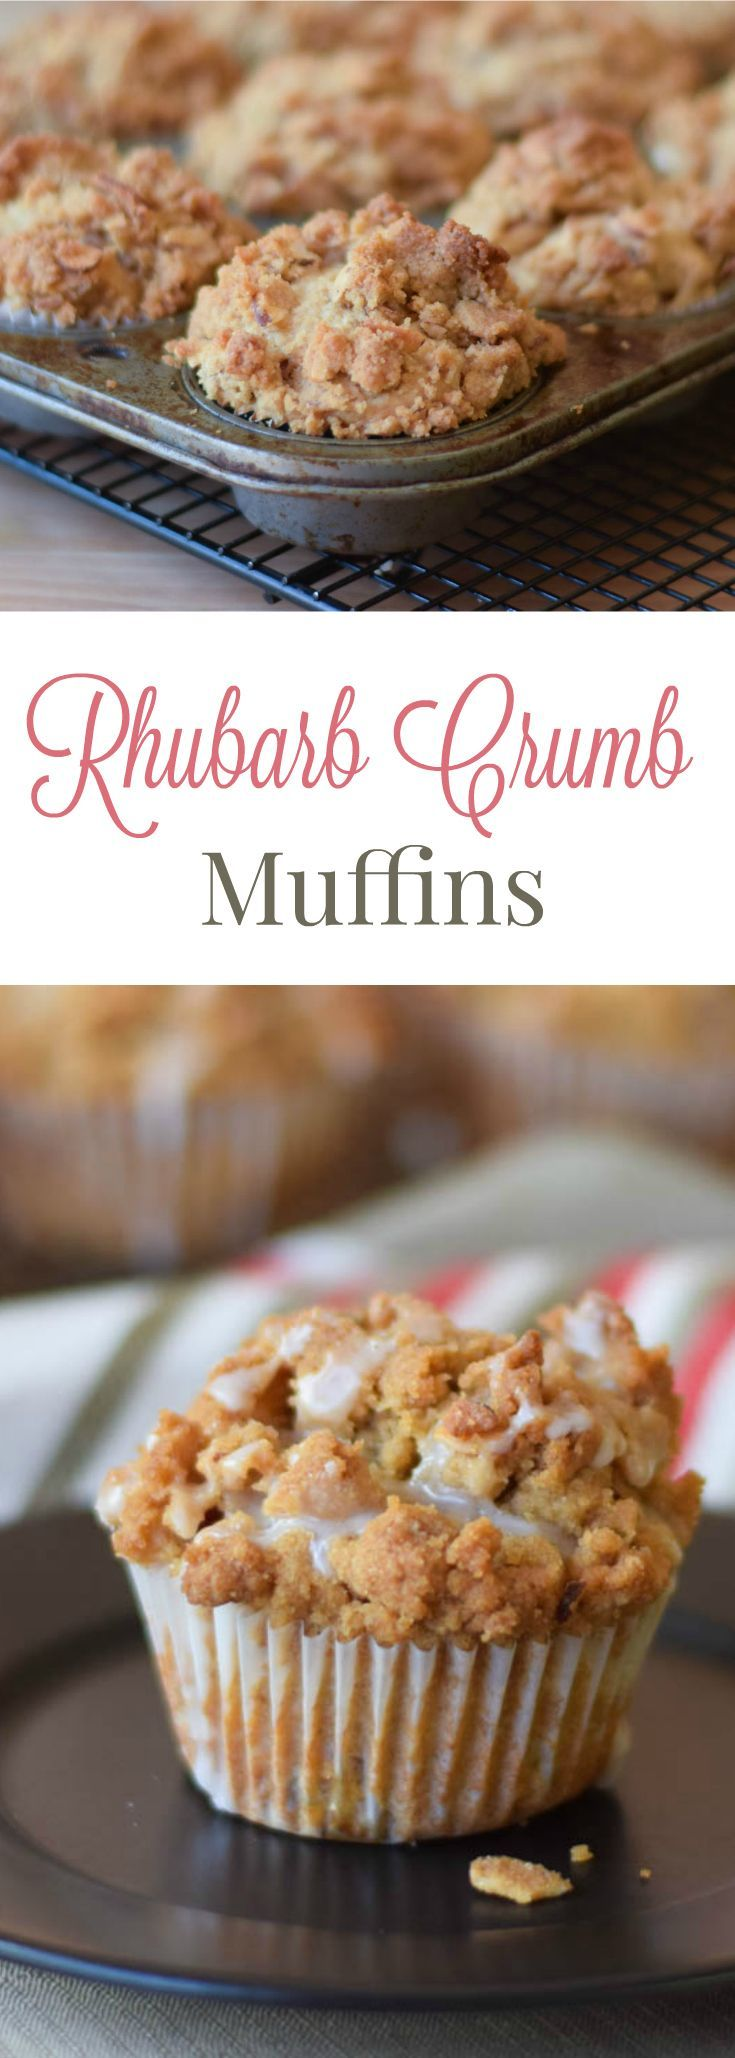 Rhubarb Crumb Muffins (baking ideas breakfast)